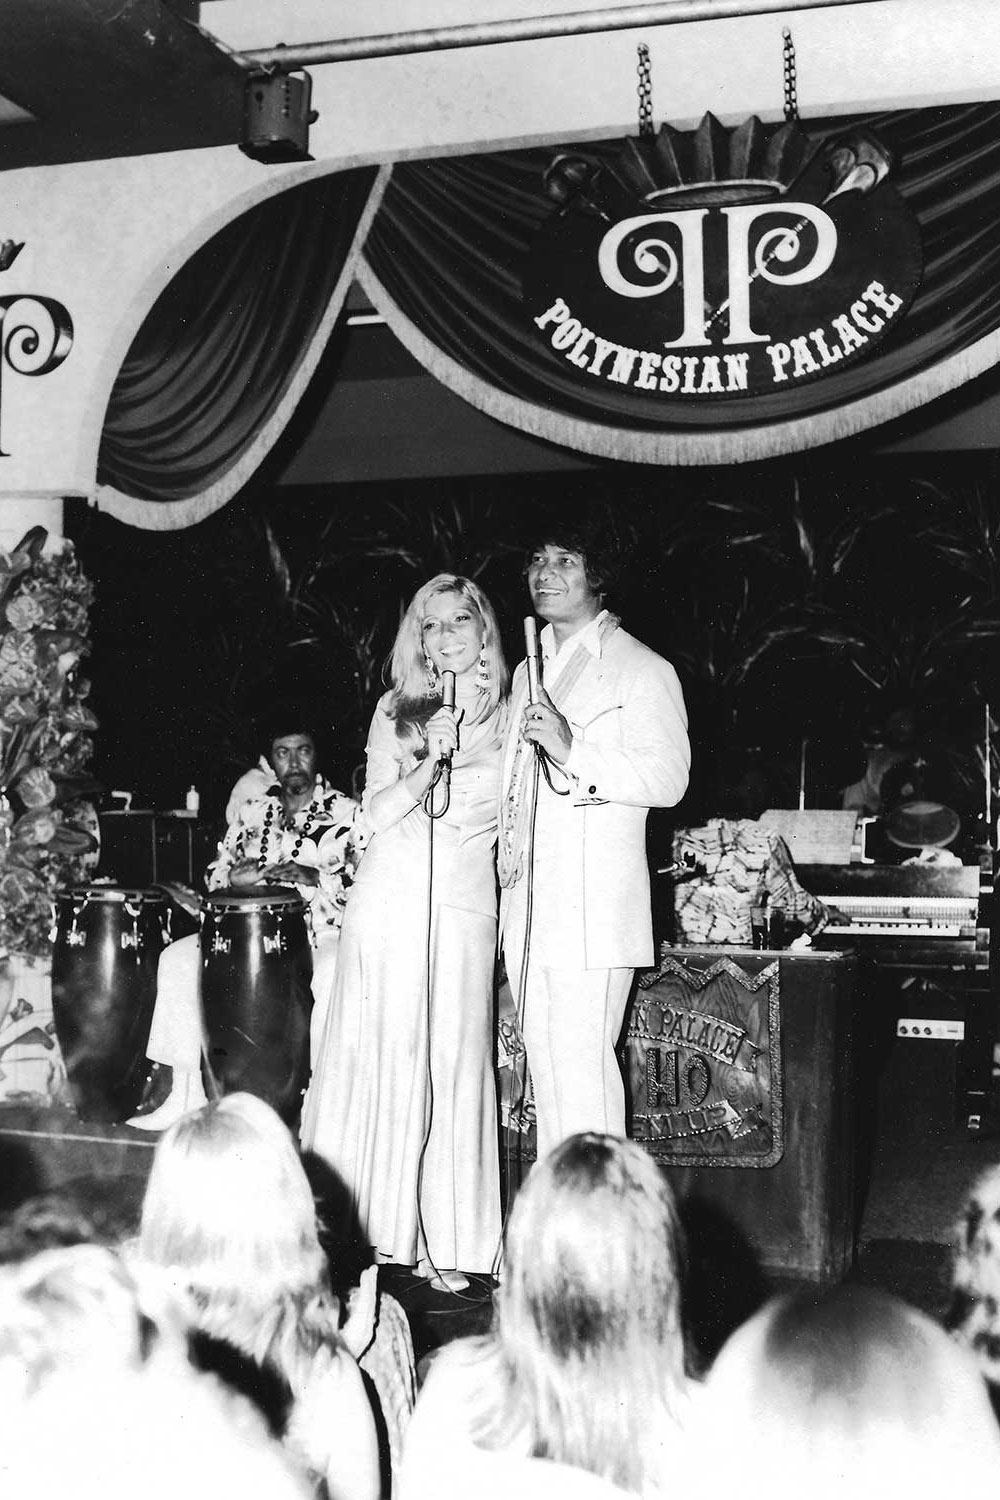 Black and white photo of Don Ho and Nancy Sinatra on stage